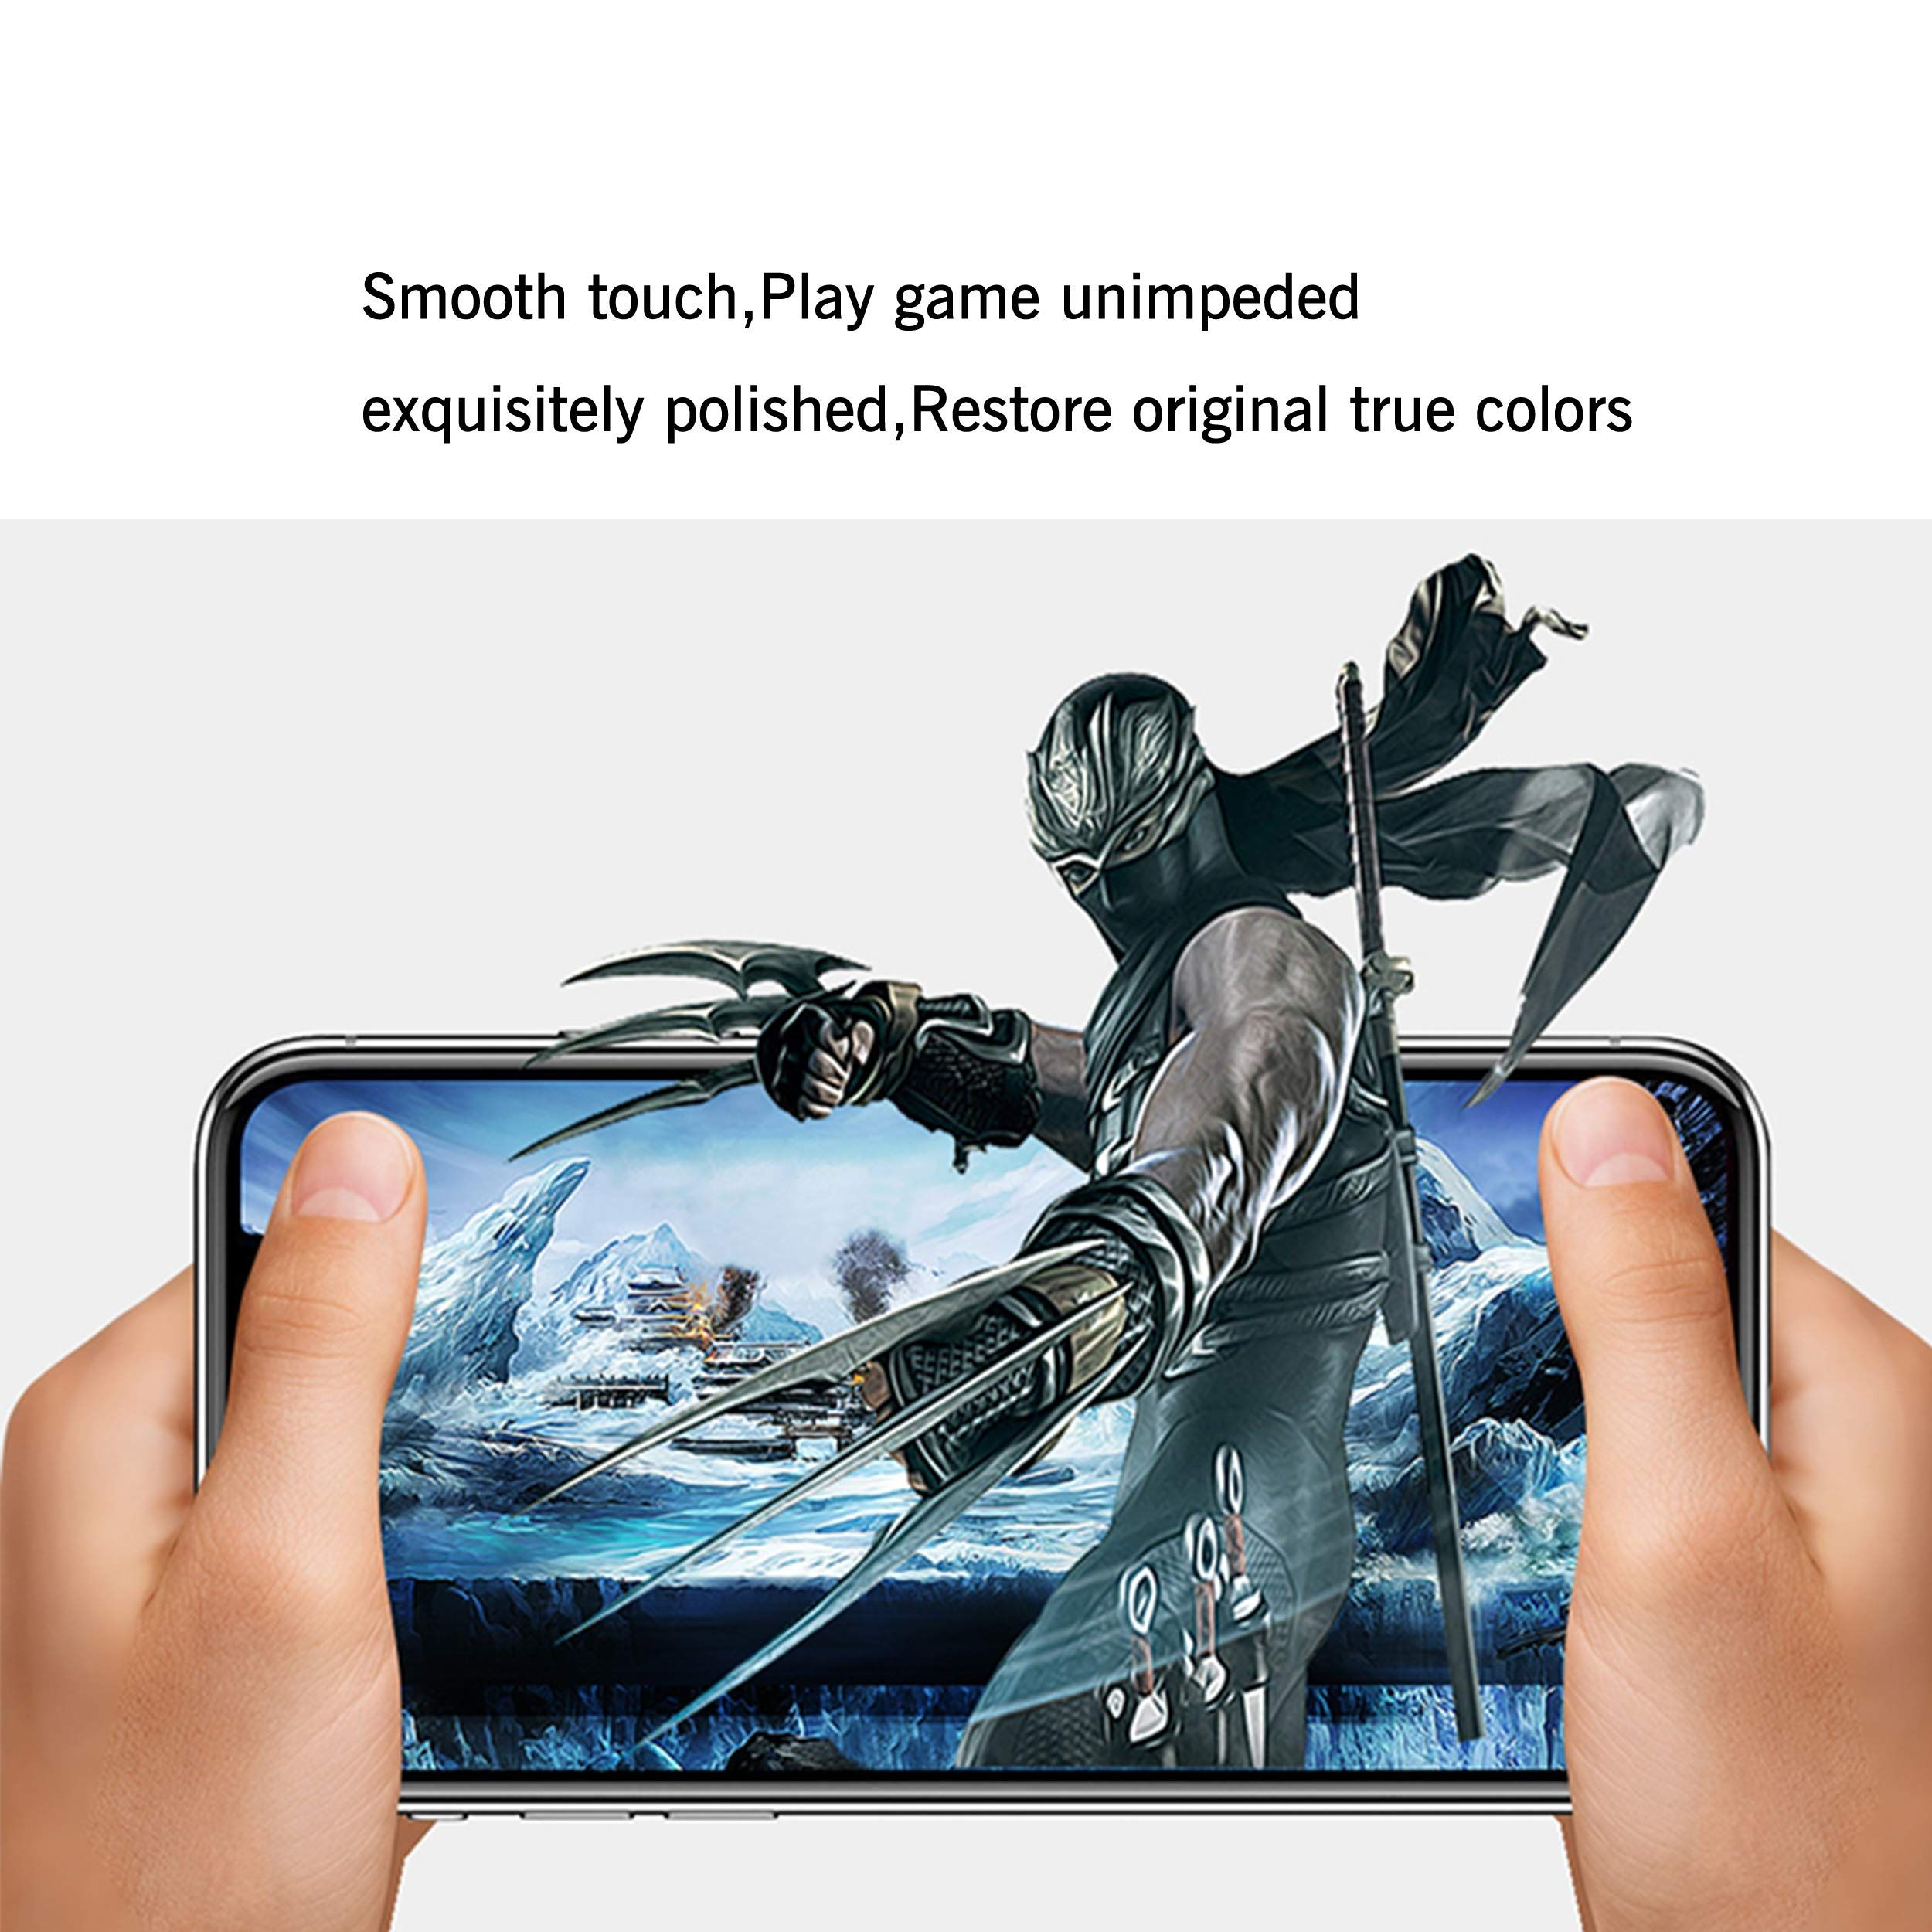 how to unlock iphone xr screen